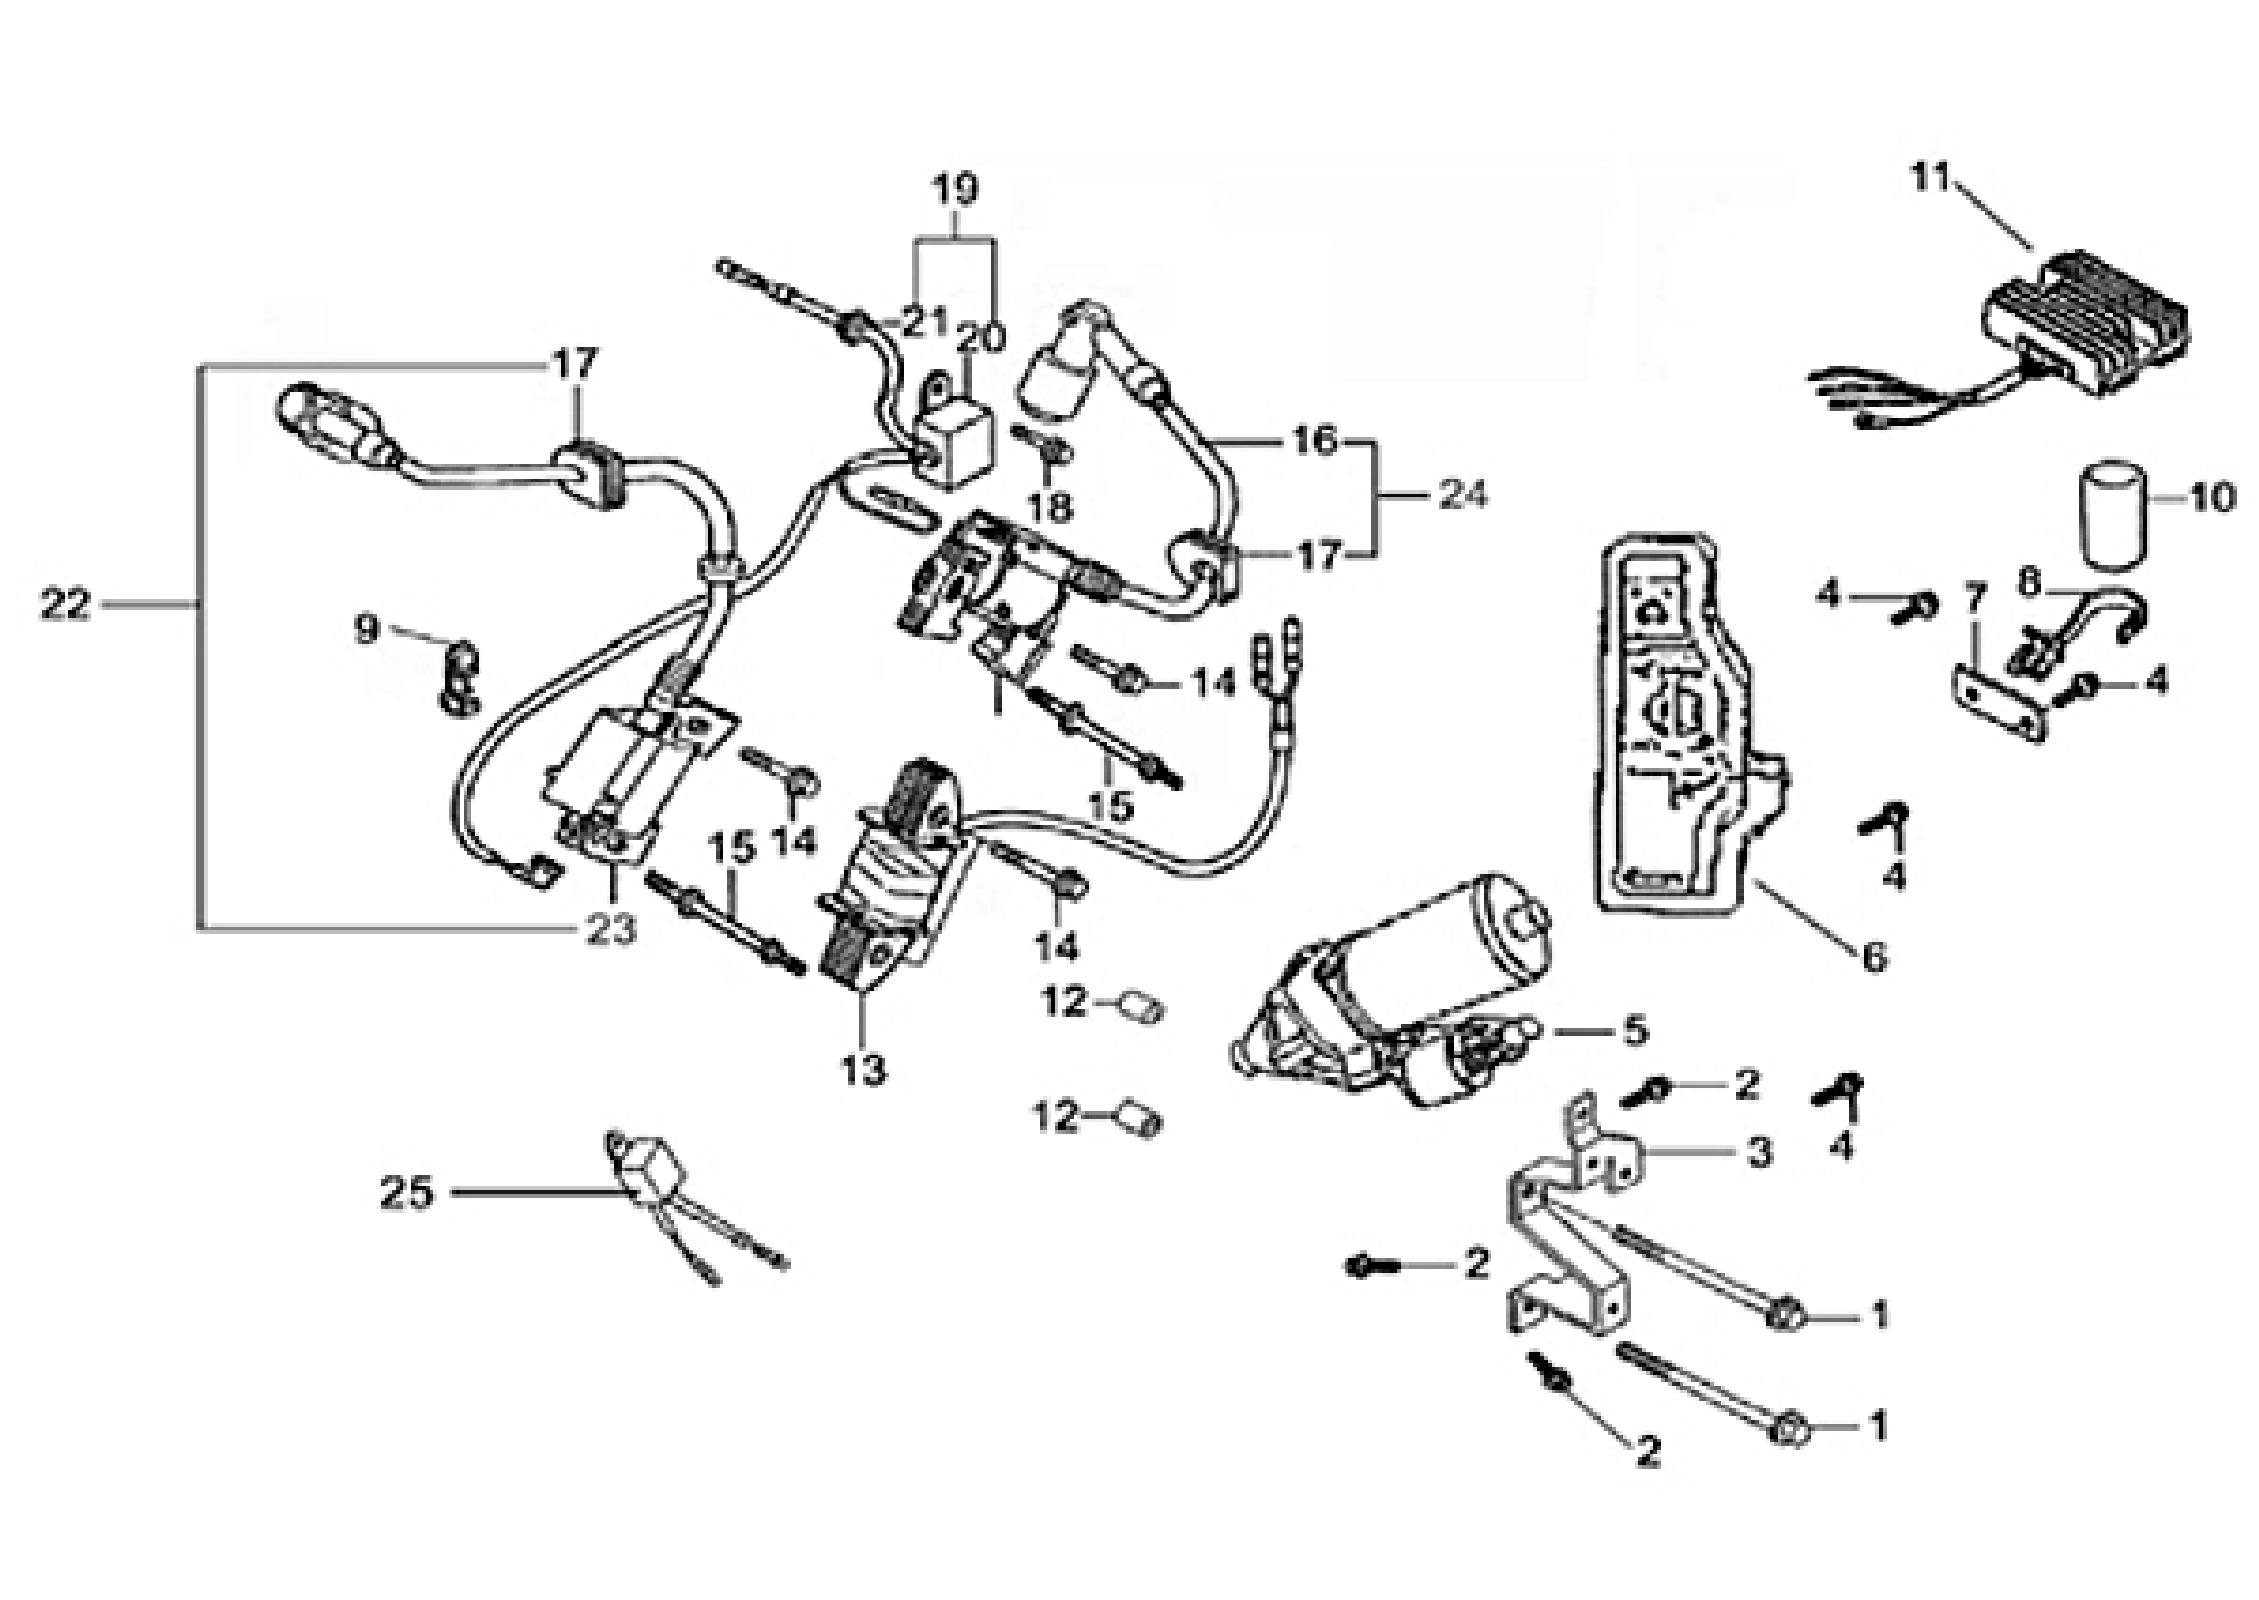 Honda Gx620 Engine Diagram, Honda, Free Engine Image For